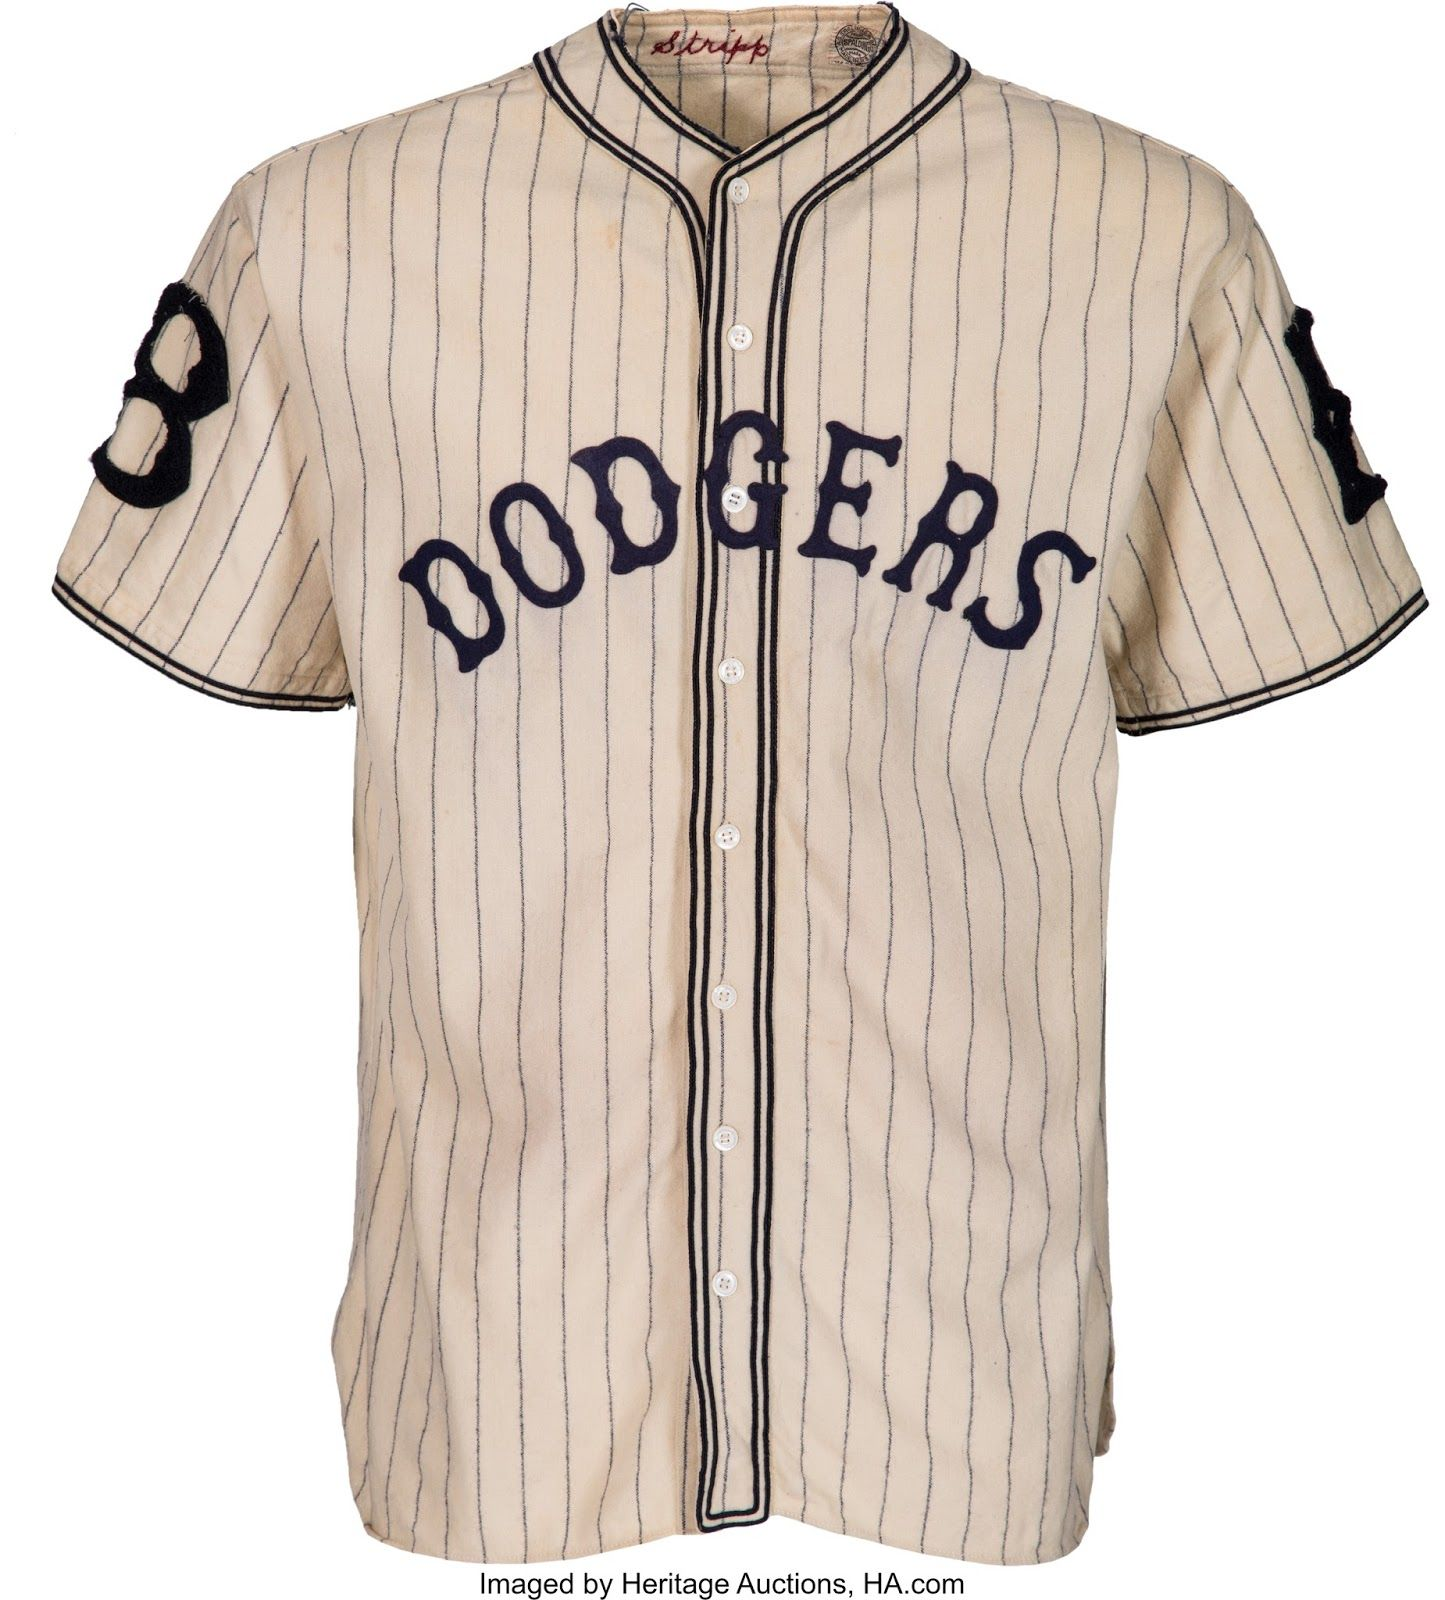 Check Out This Vintage Dodger Pinstripes Uniform 1933 Baseball Jersey Outfit Dodgers Baseball Dodgers